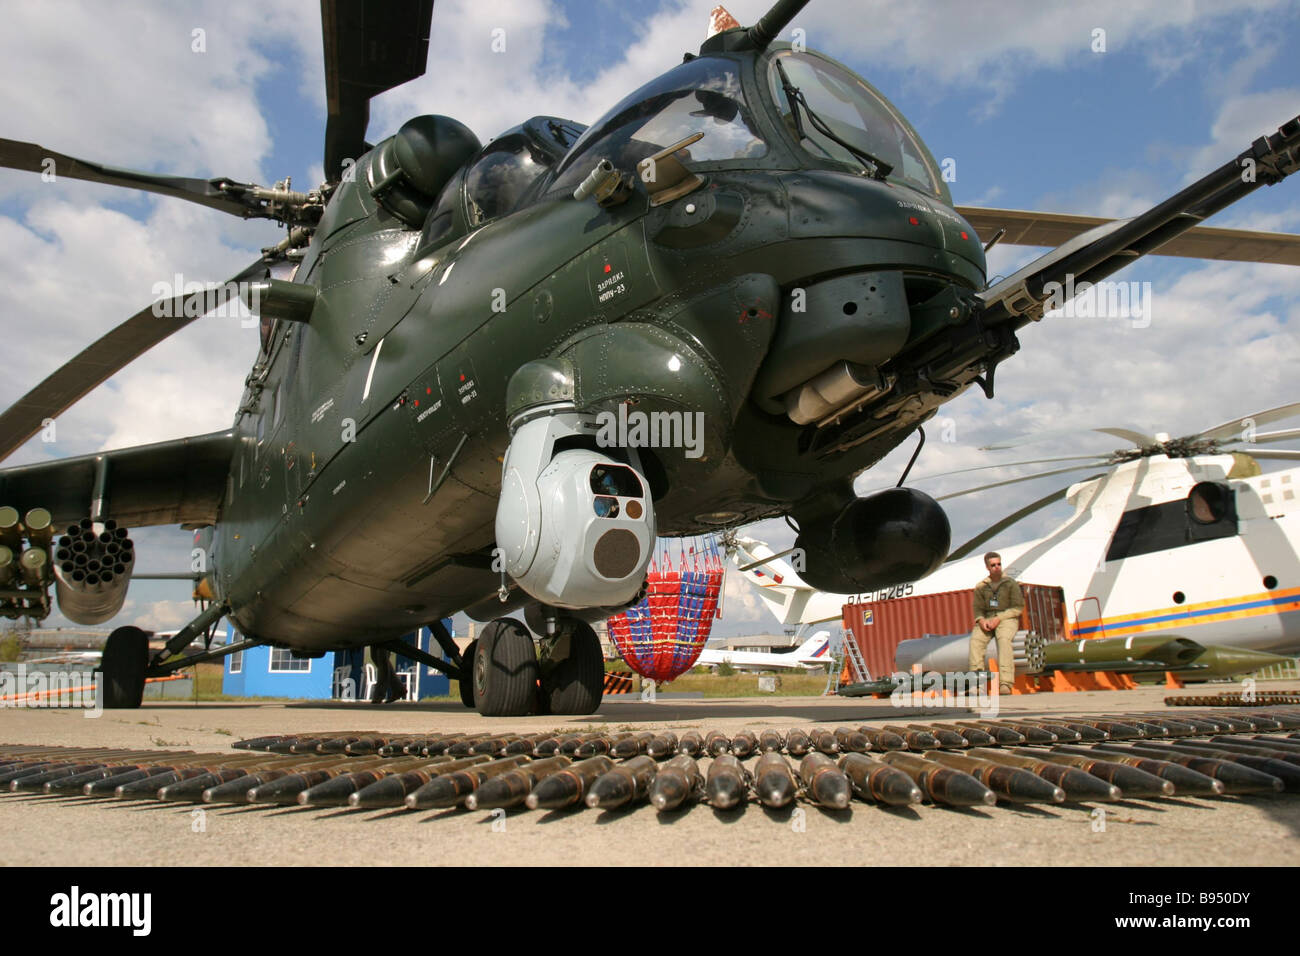 A transport combat helicopter MI 35M at the MAKS International Aviation and Space Salon - Stock Image